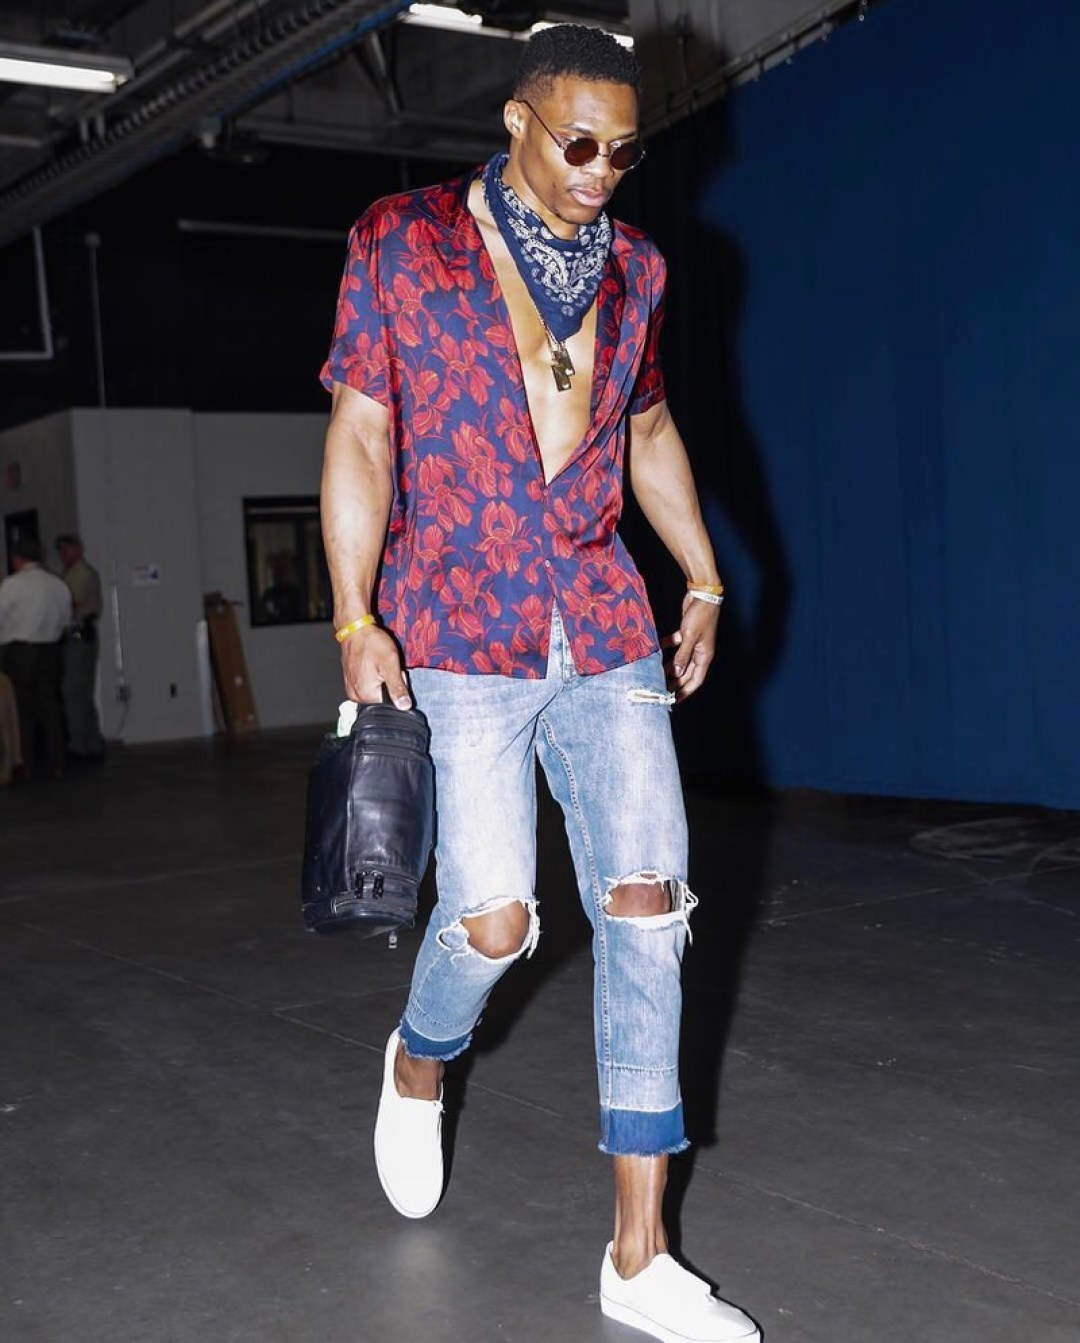 Russ looks like he's on vacation, but his style is all business.